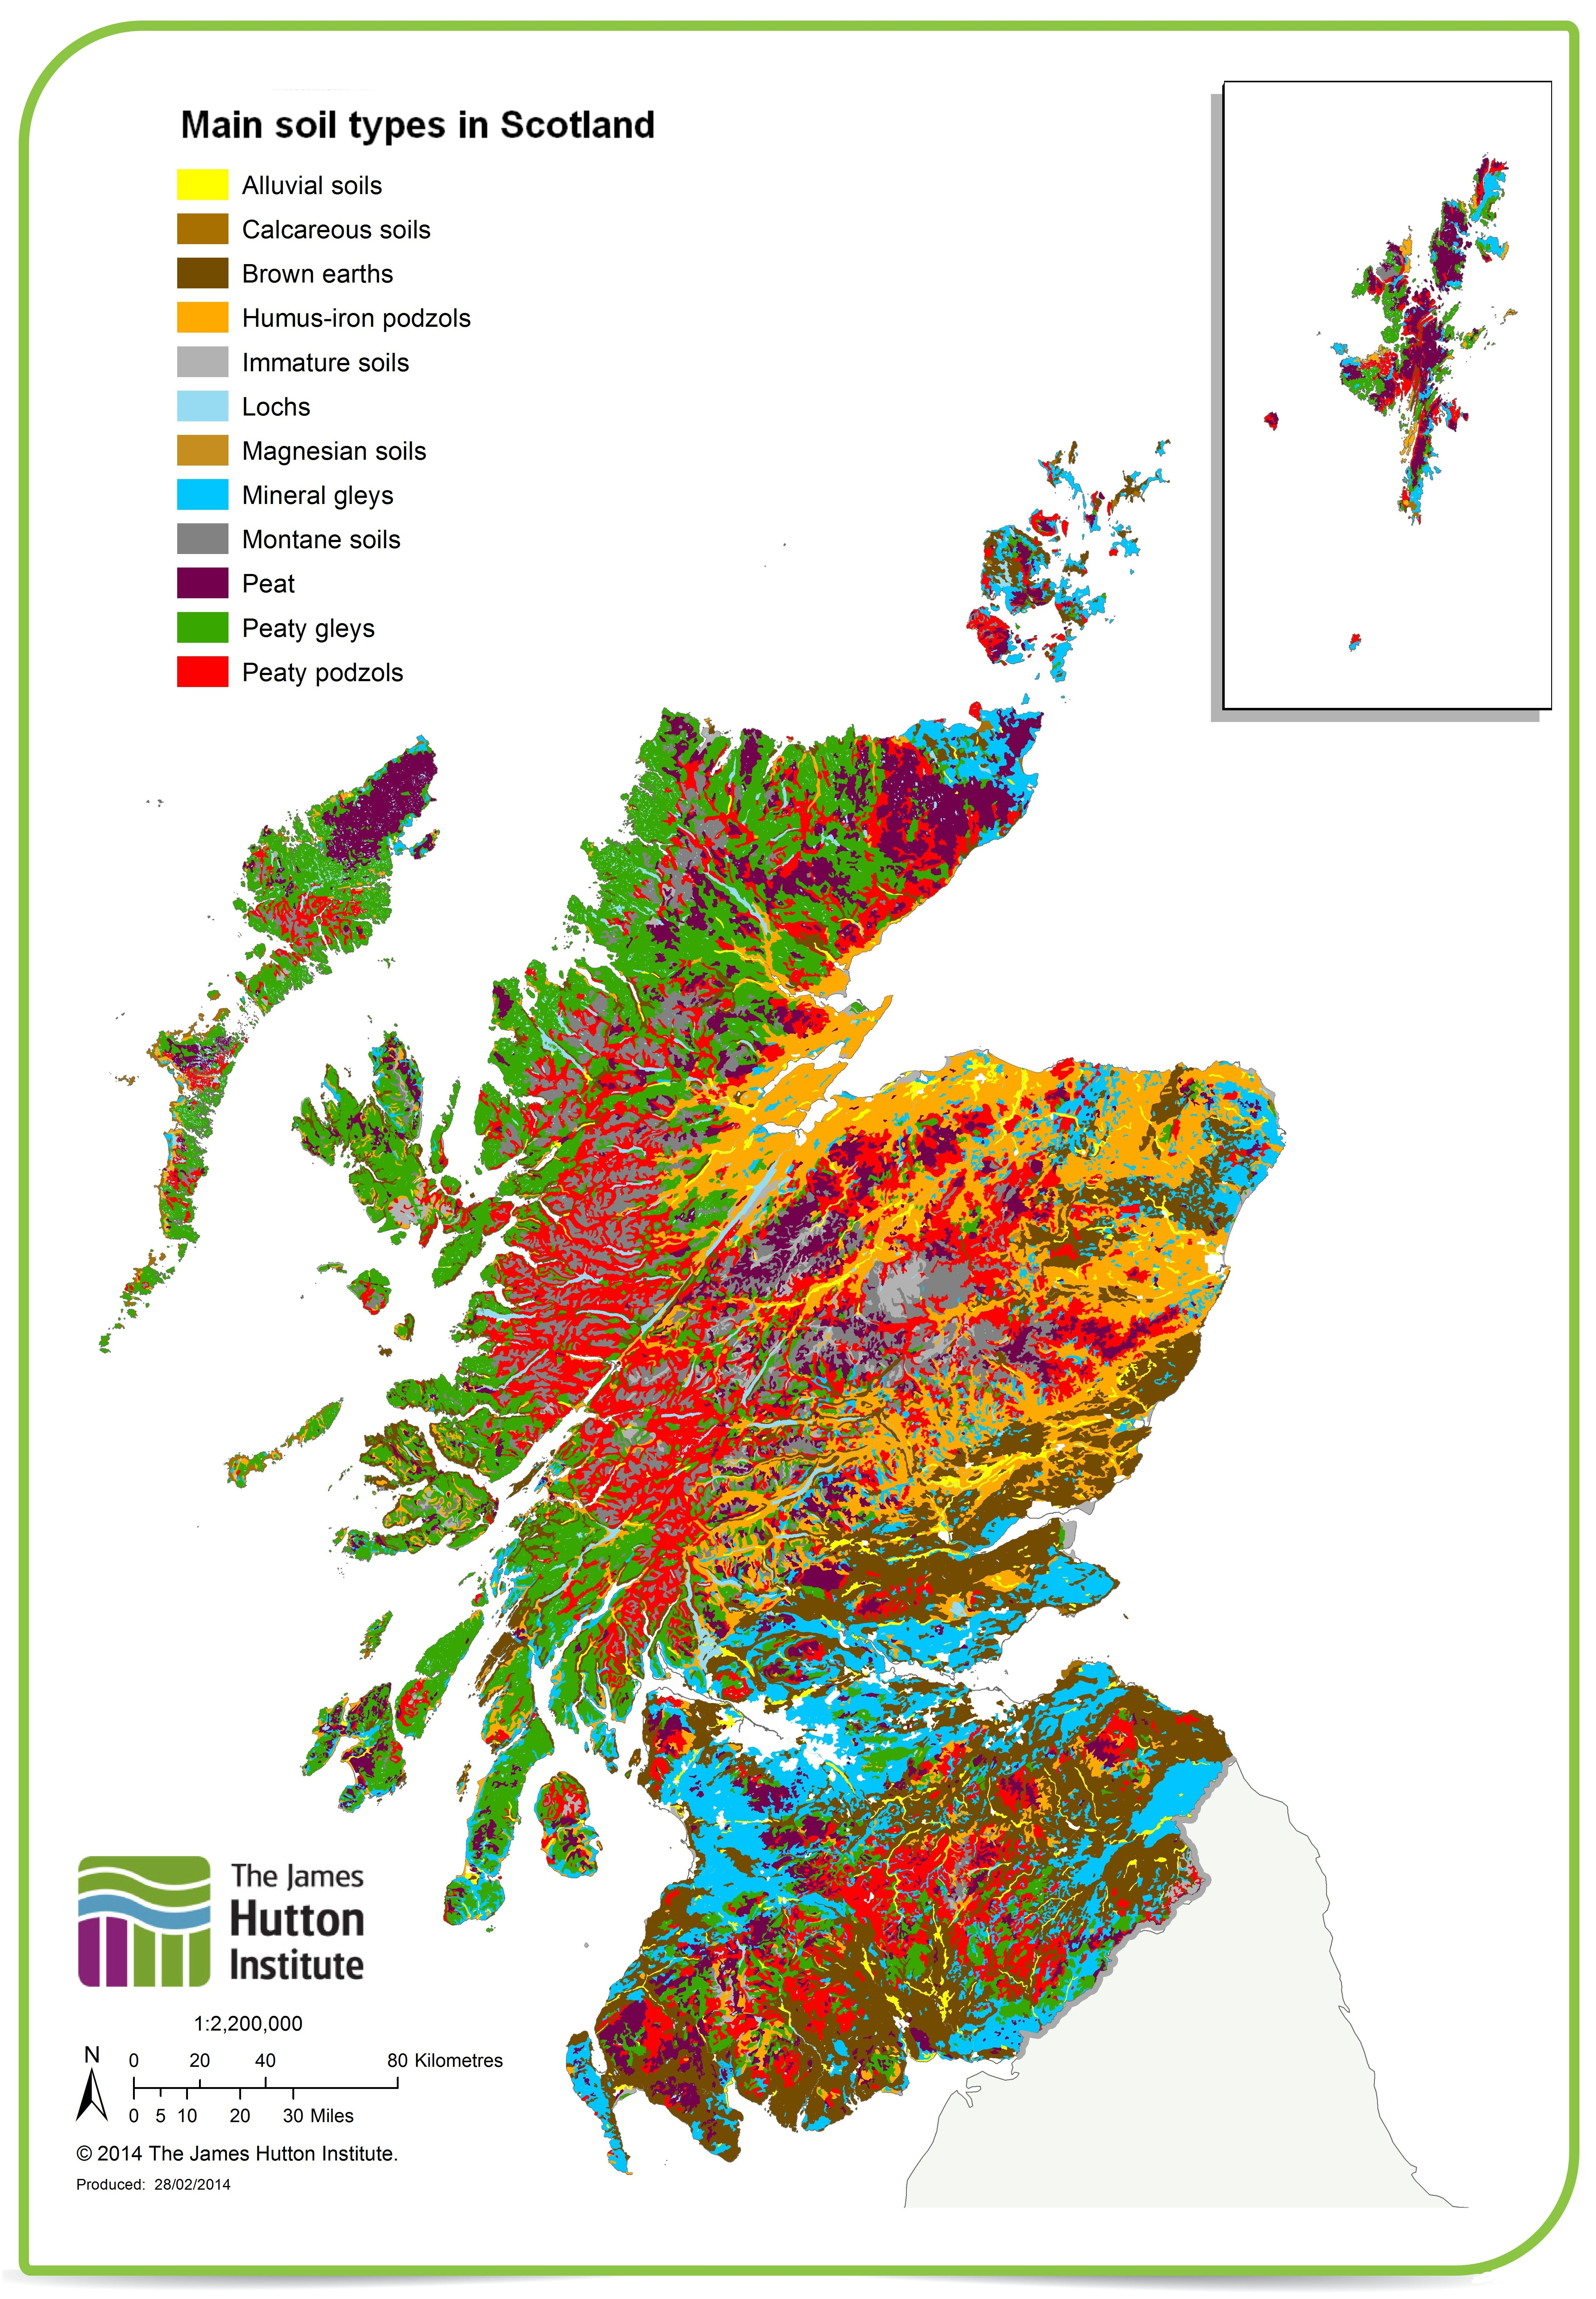 Land scotland 39 s environment web for What type of resource is soil